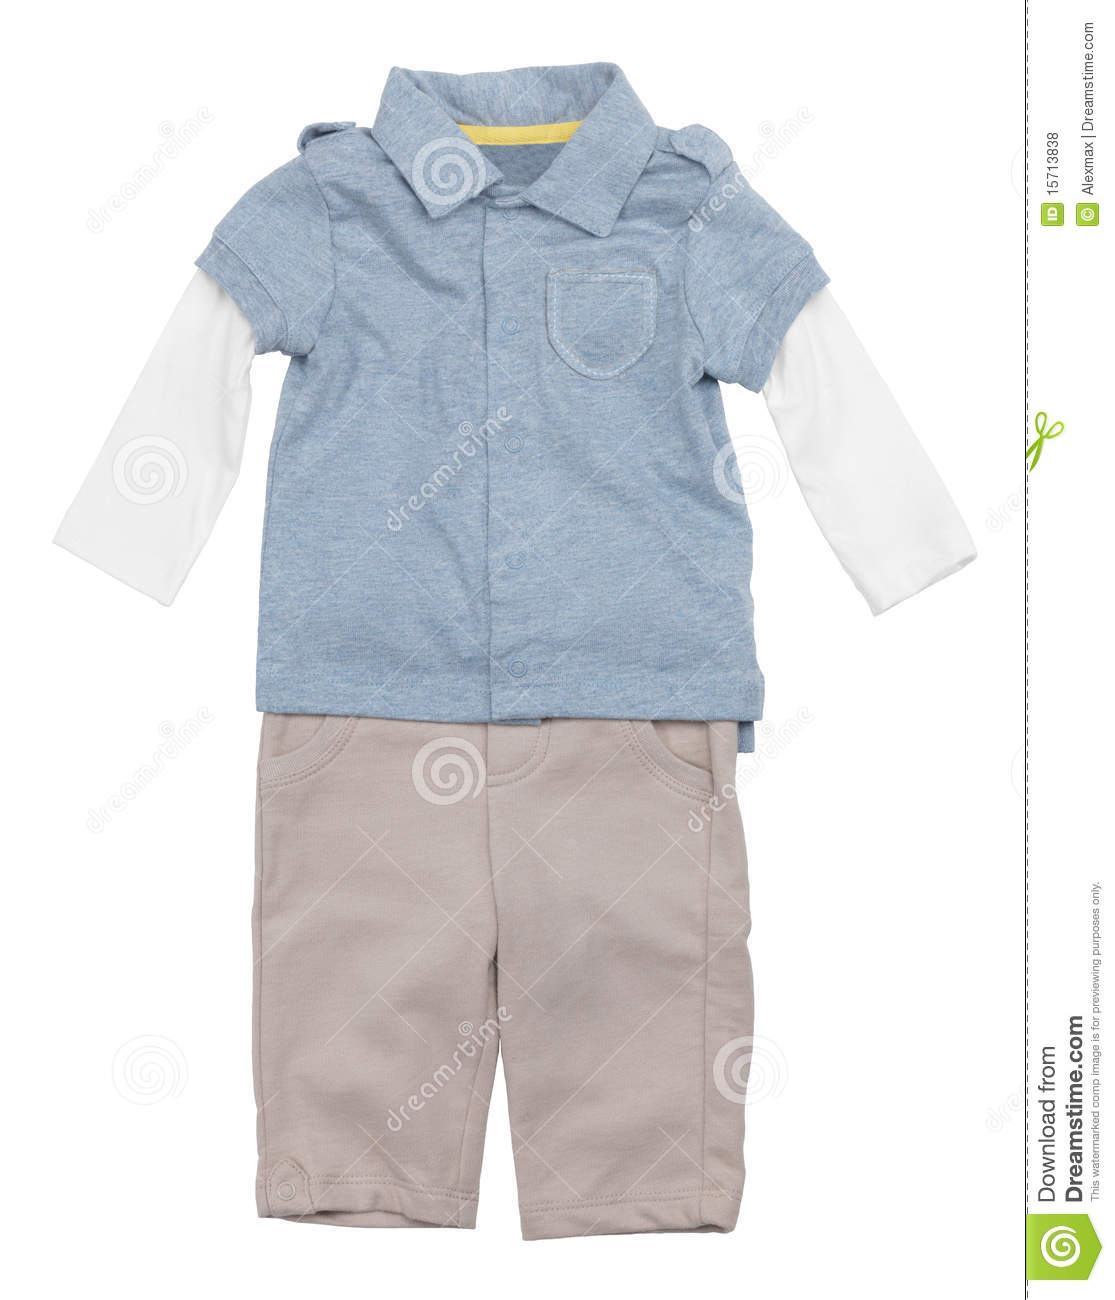 Boys' Clothing: Free Shipping on orders over $45 at oraplanrans.tk - Your Online Boys' Clothing Store! Get 5% in rewards with Club O! Skip to main content FREE Shipping & Easy Returns* Search. Earn Rewards with Overstock. Missed Rewards. You've missed out on Club O Rewards! Join Club O now and start earning.